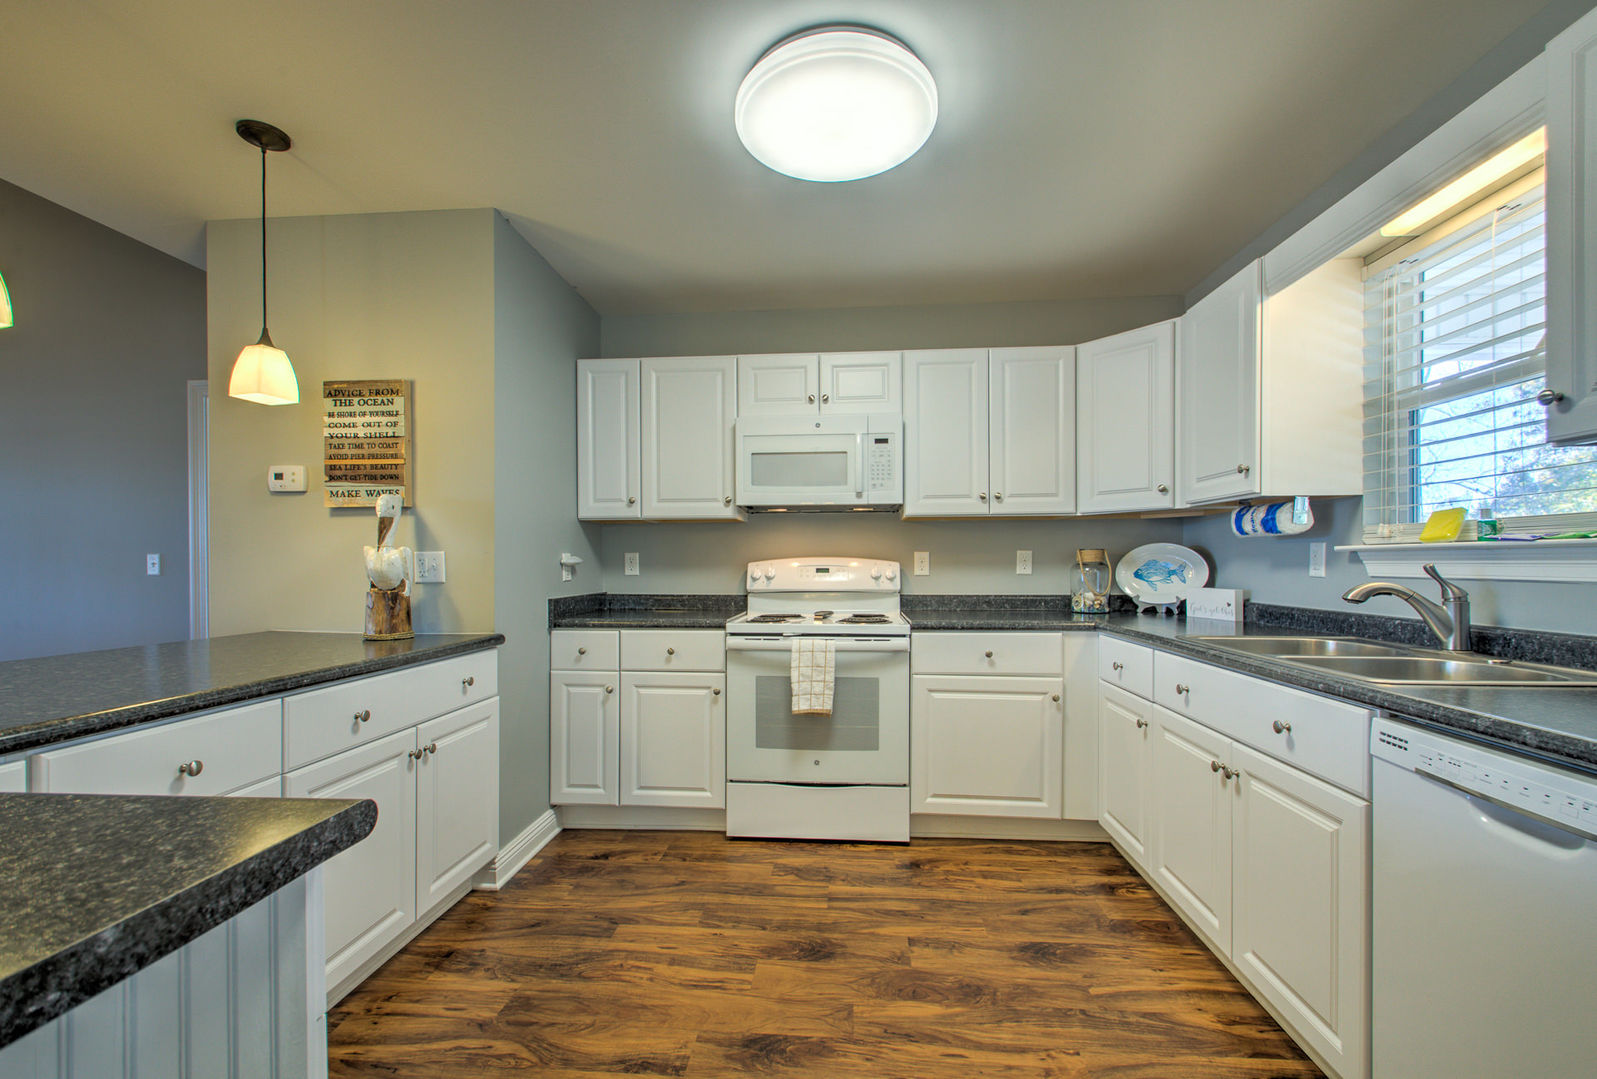 Vacation Home in Orange Beach Features a Spacious Kitchen.